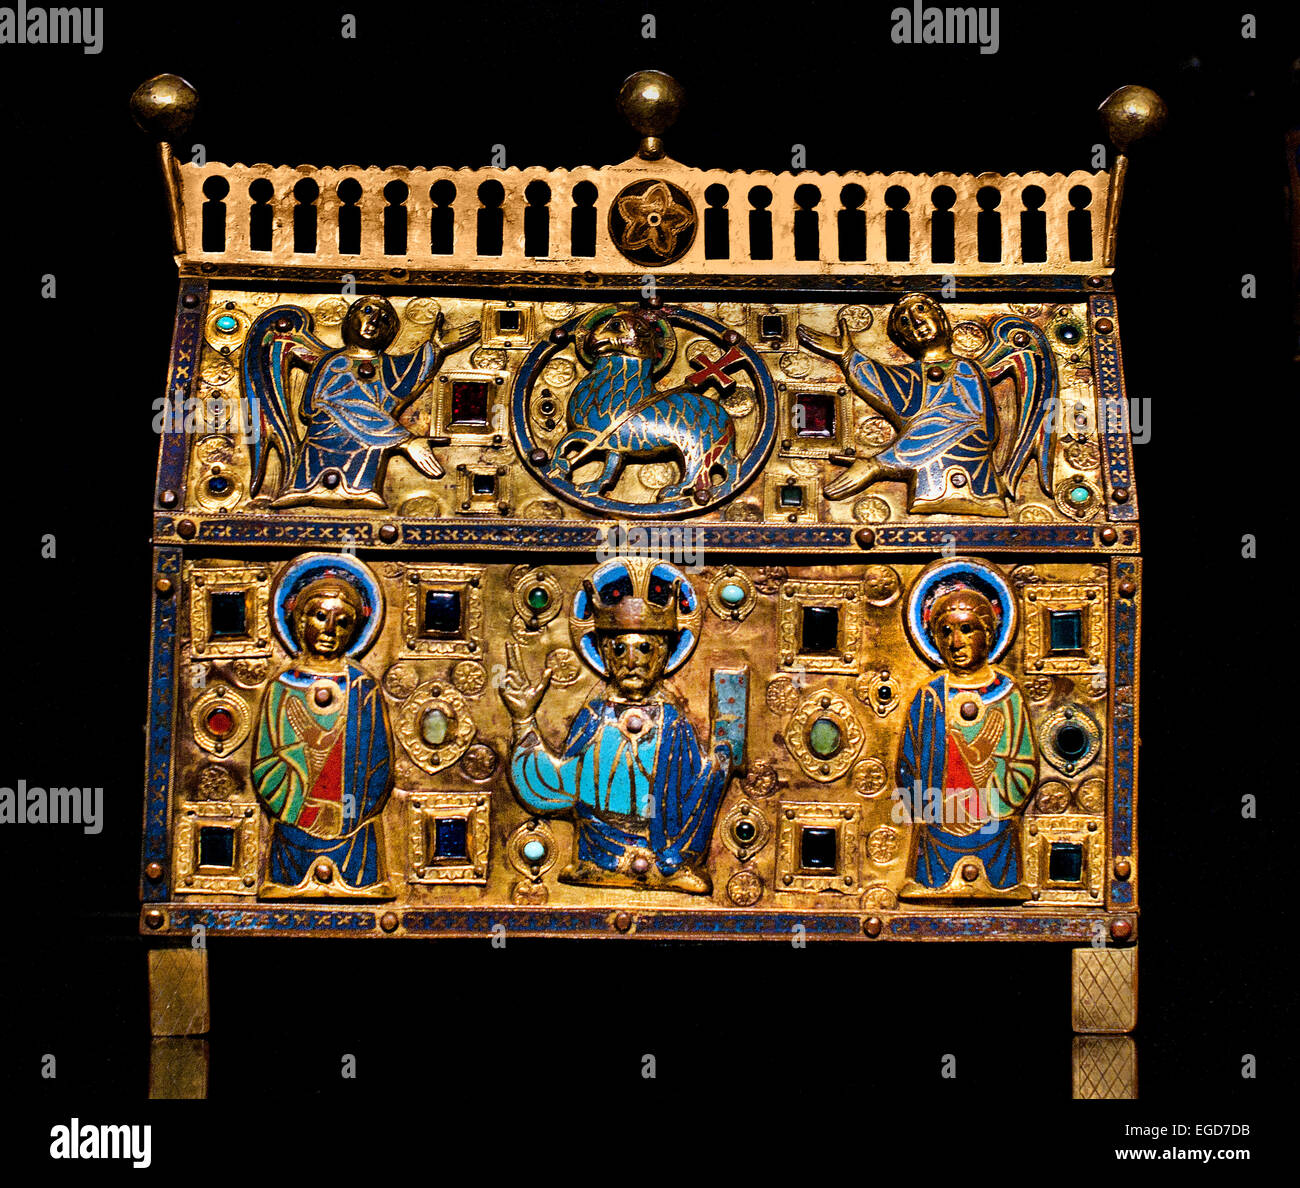 Reliquary decorated with Christ saint and angles Limoges c 1200-1250 Gold gilded copper enamel and inlaid glass - Stock Image